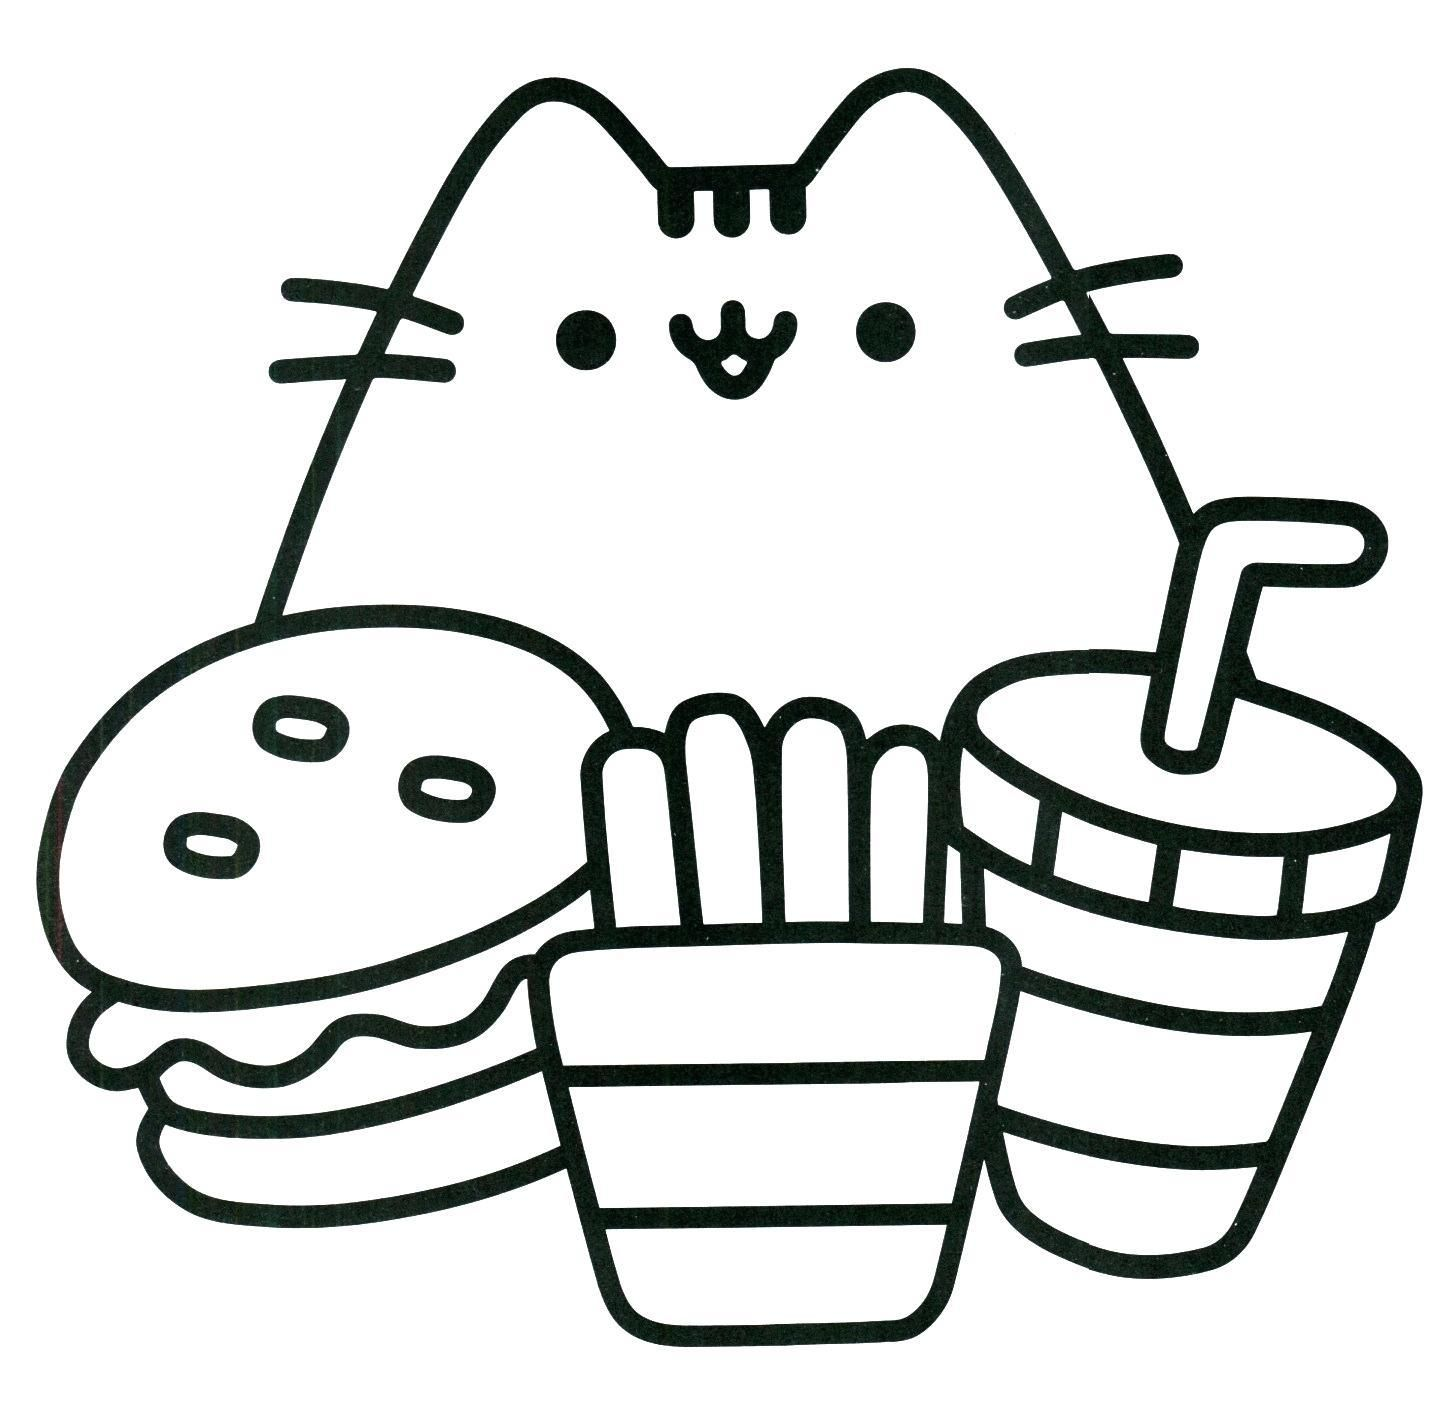 10 Free Printable Colouring Pictures In 2020 Hello Kitty Colouring Pages Kids Printable Coloring Pages Unicorn Coloring Pages